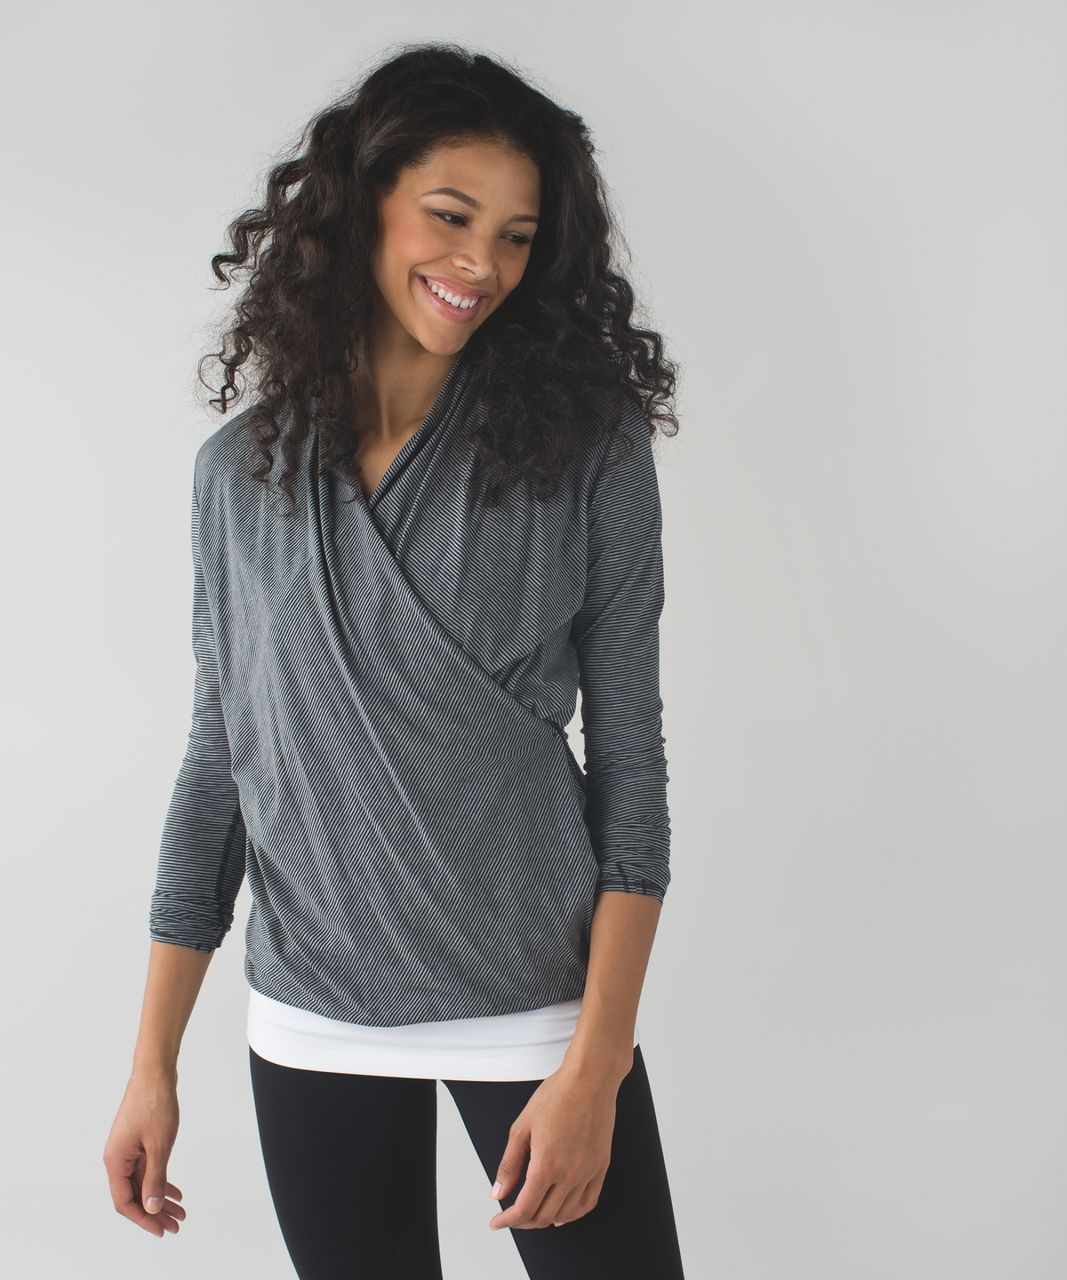 Lululemon Radiant Long Sleeve - Tonka Stripe Black Heathered Medium Grey